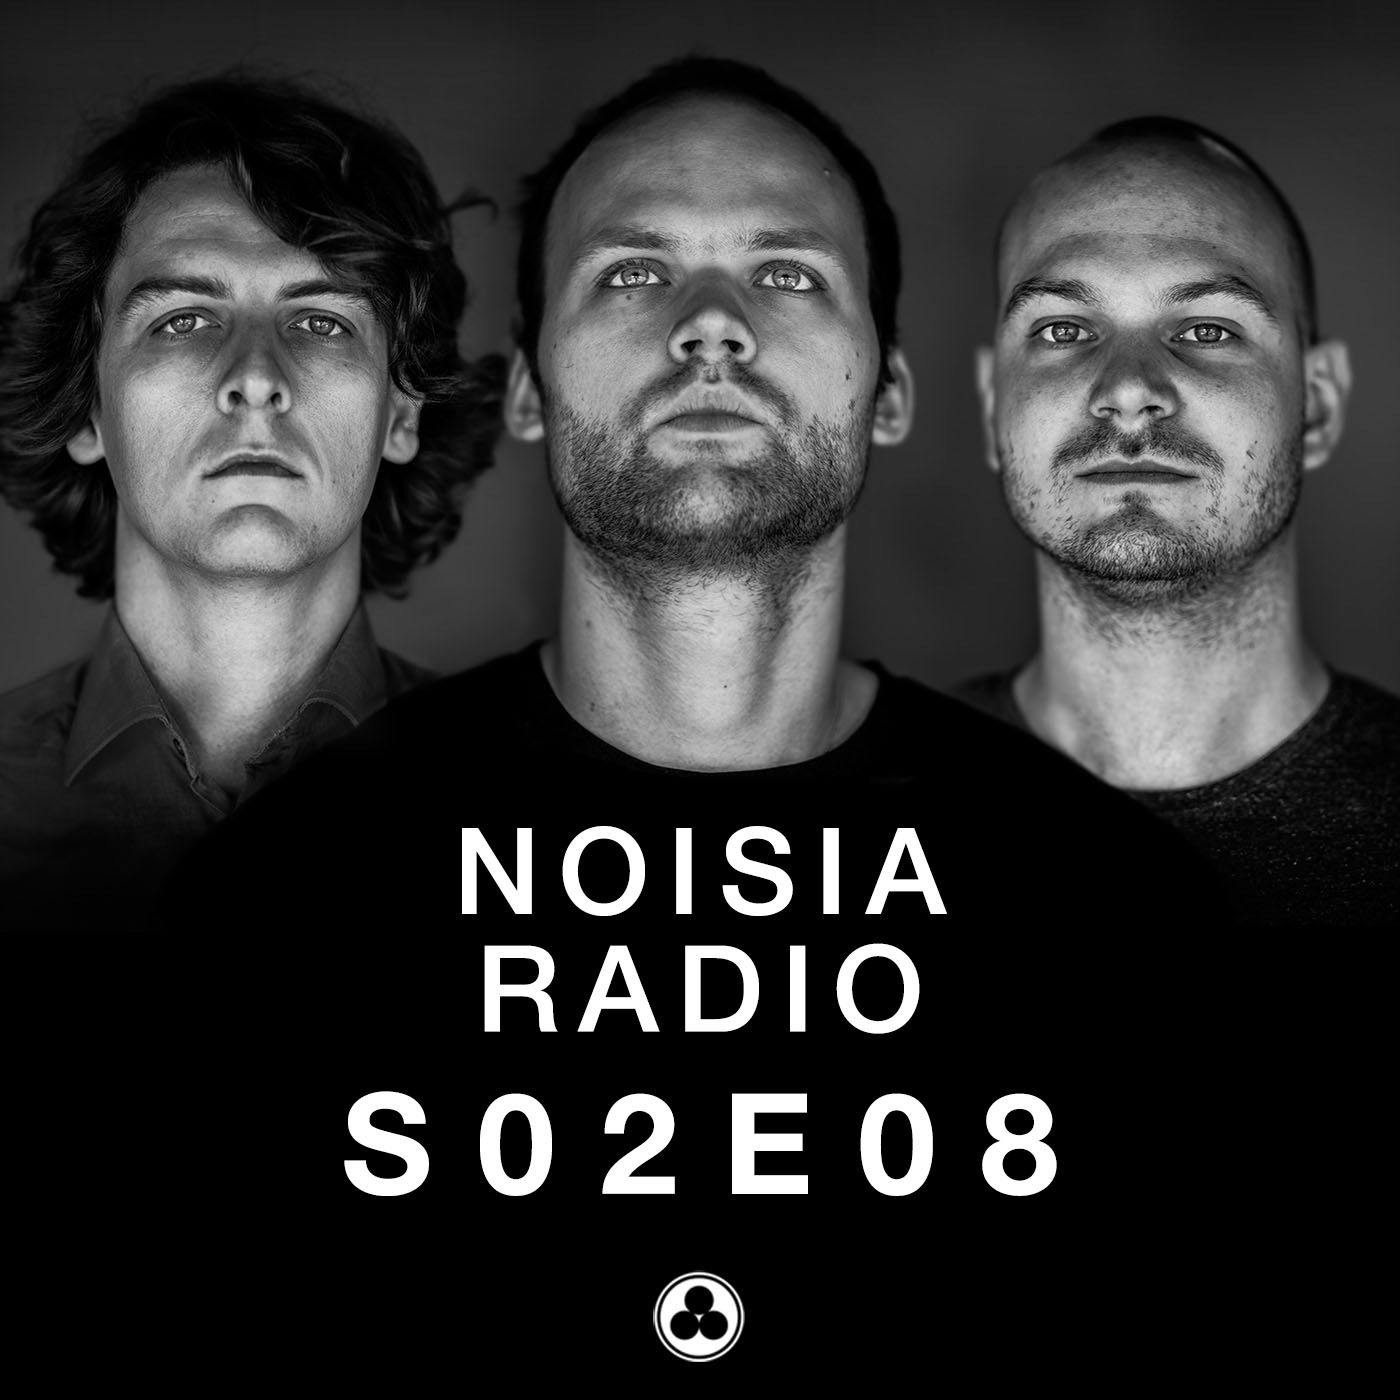 Noisia Radio S02E08